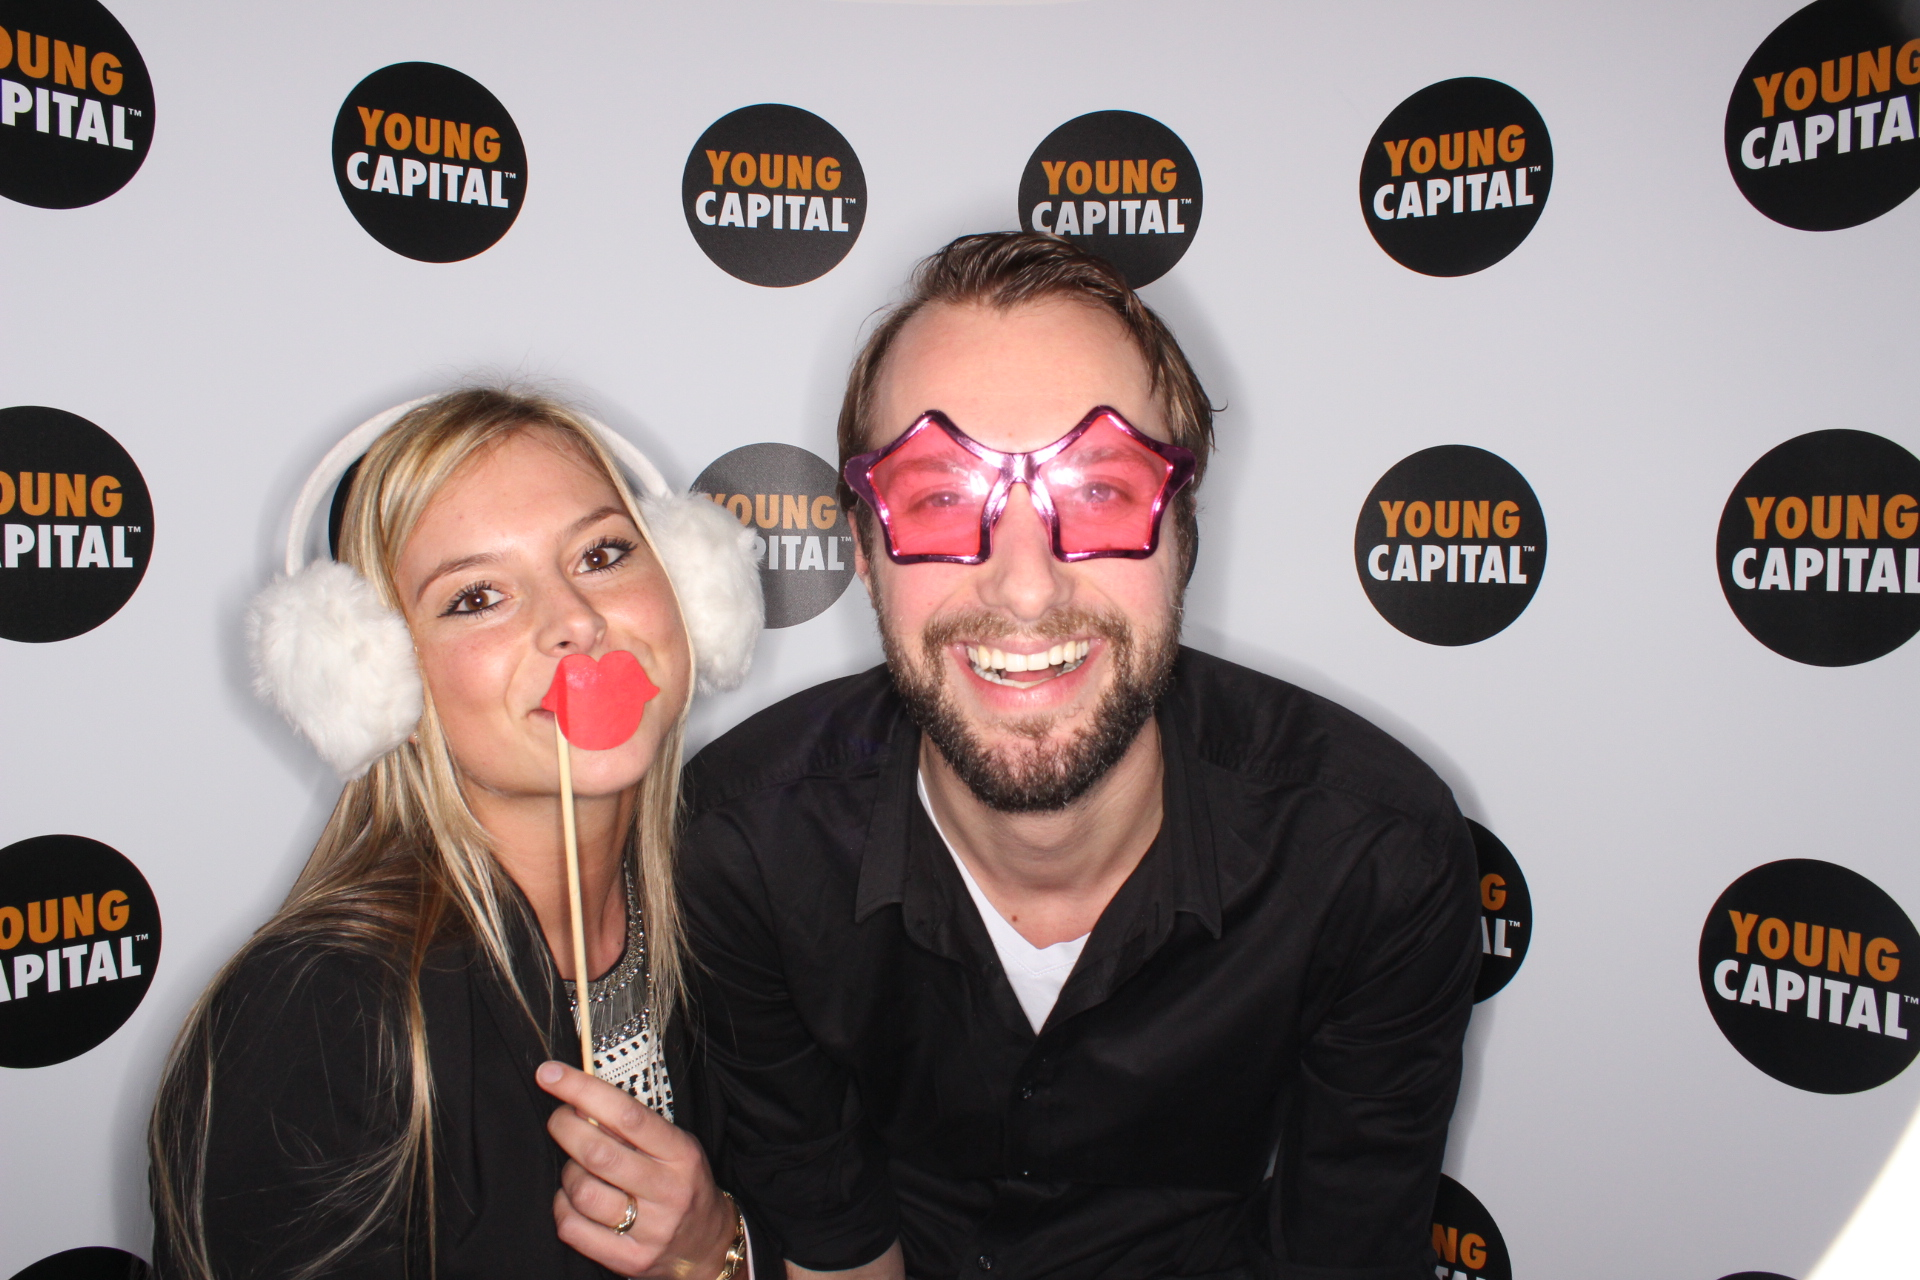 YoungCapital collega's in photobooth